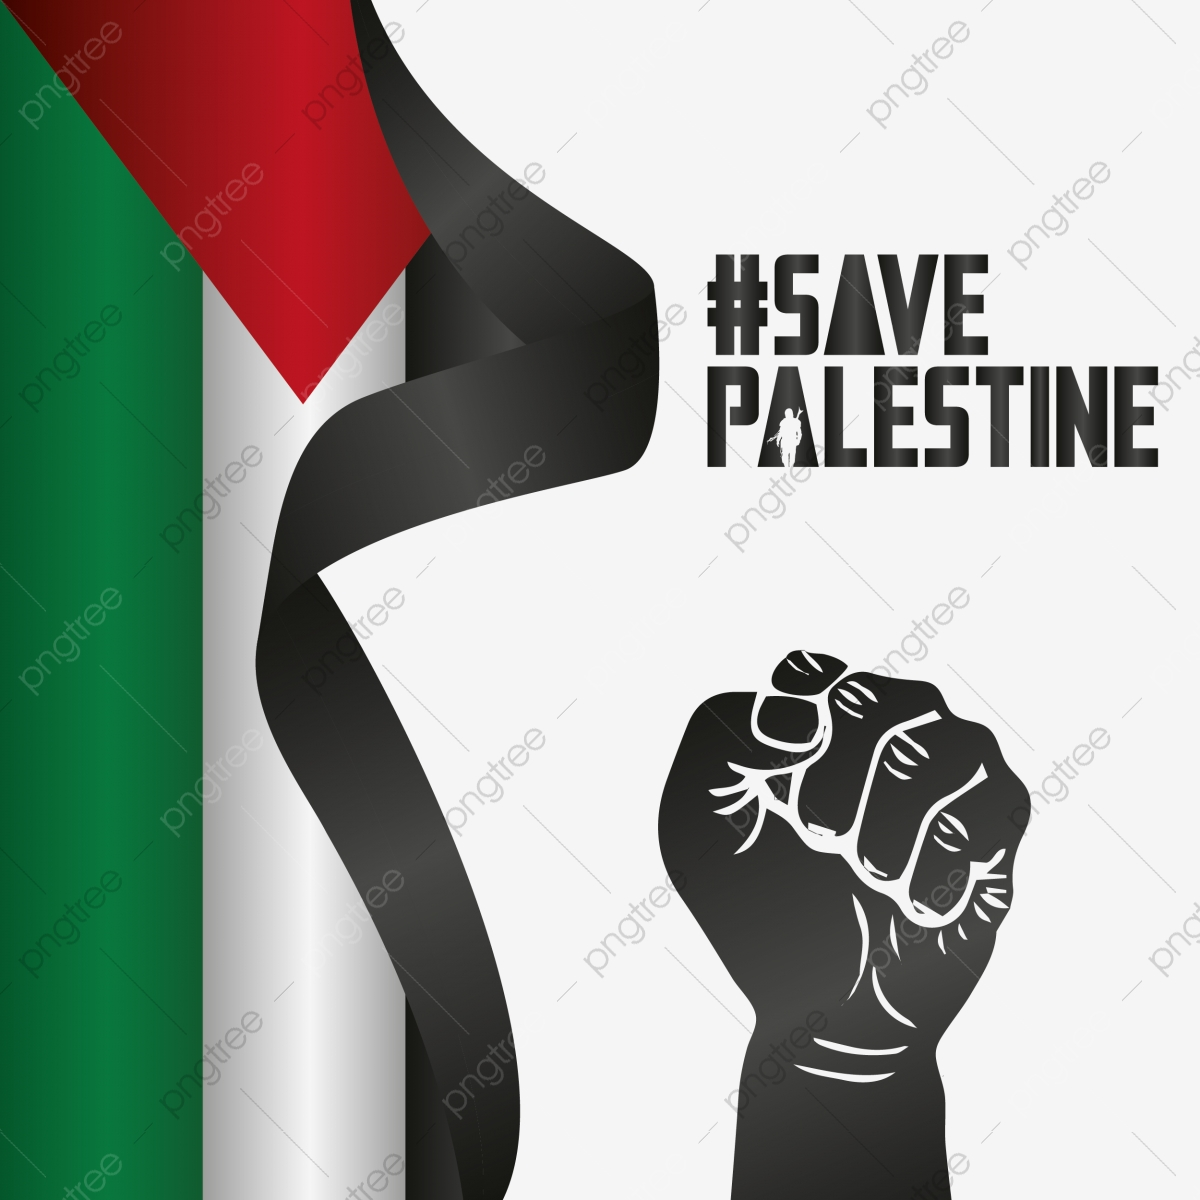 Palestina Png Images Vector And Psd Files Free Download On Pngtree